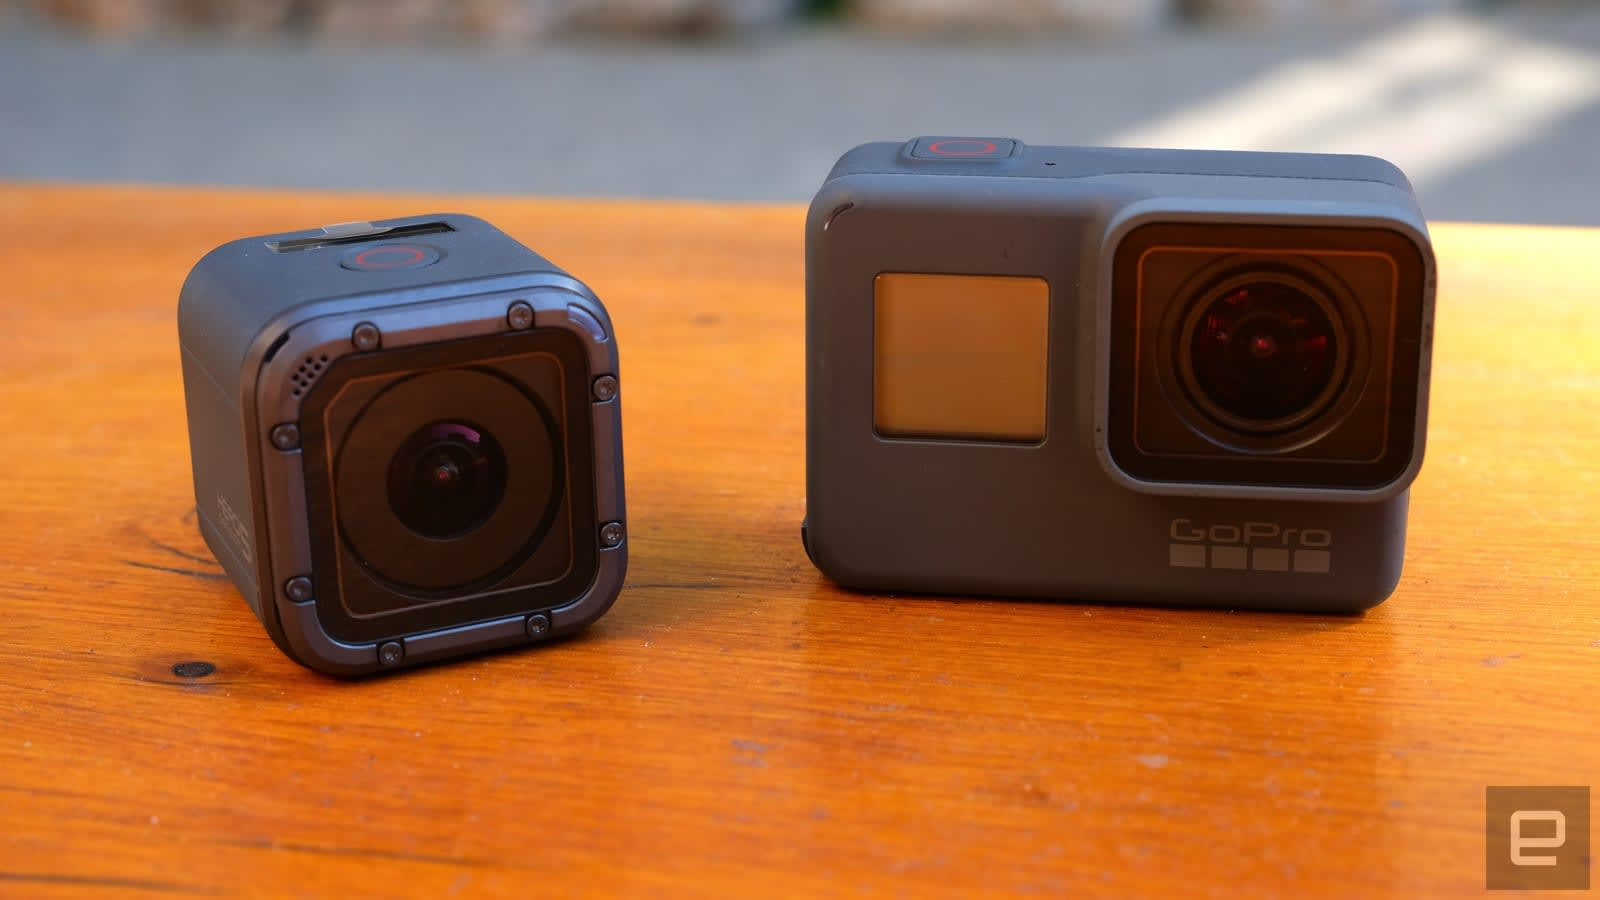 CNBC: GoPro is putting itself up for sale